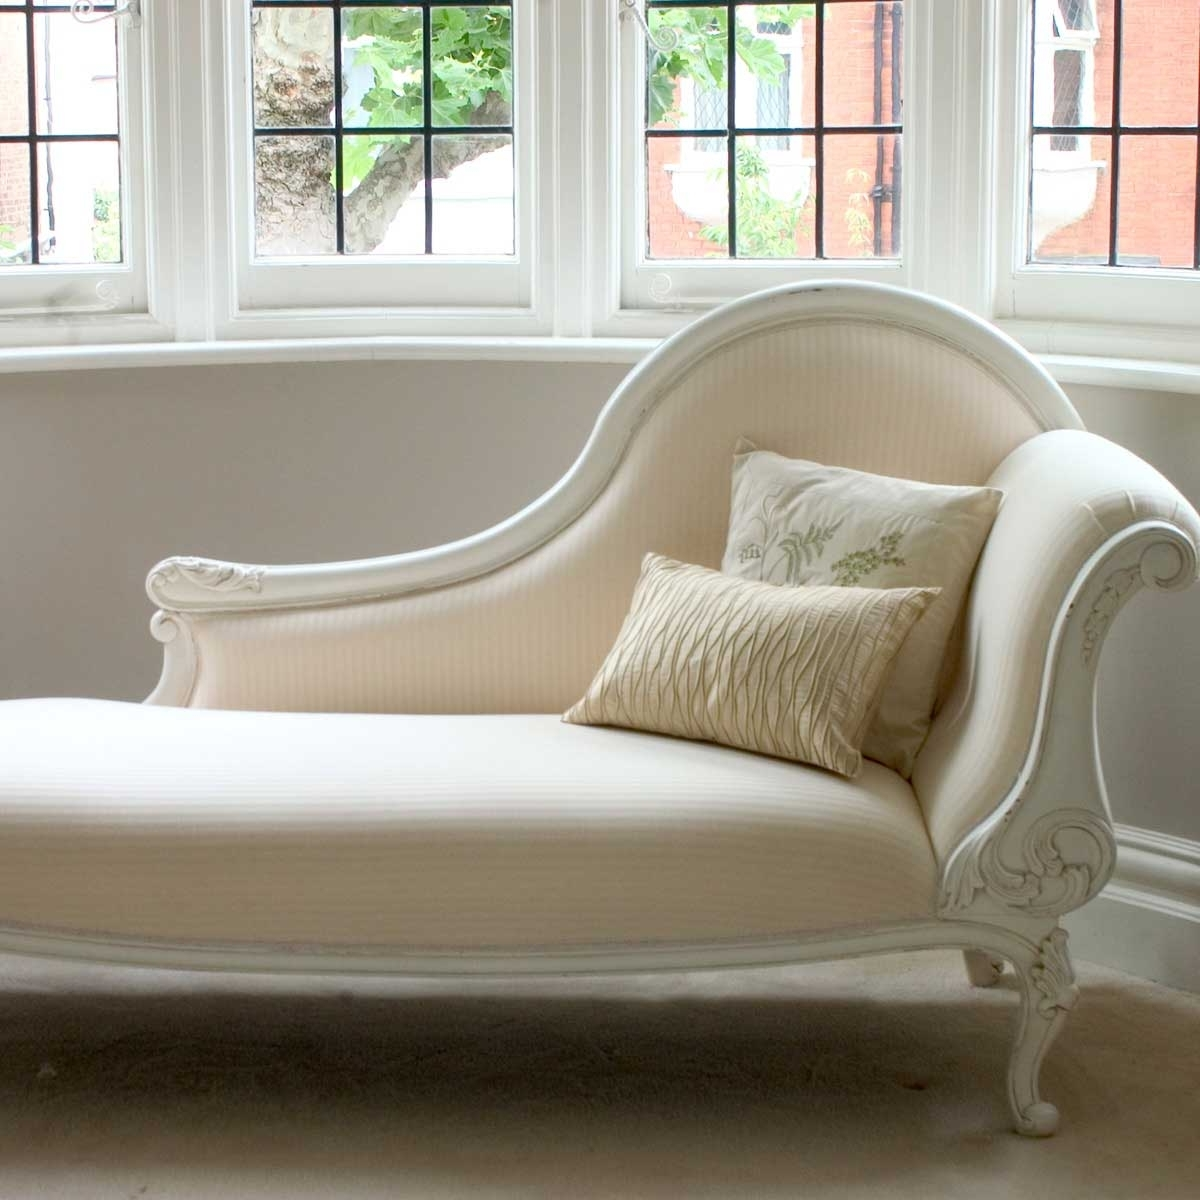 Inexpensive Chaise Lounges Inside Best And Newest Tufted Chaise Lounge : Mtc Home Design – How To Make Bedroom (View 6 of 15)